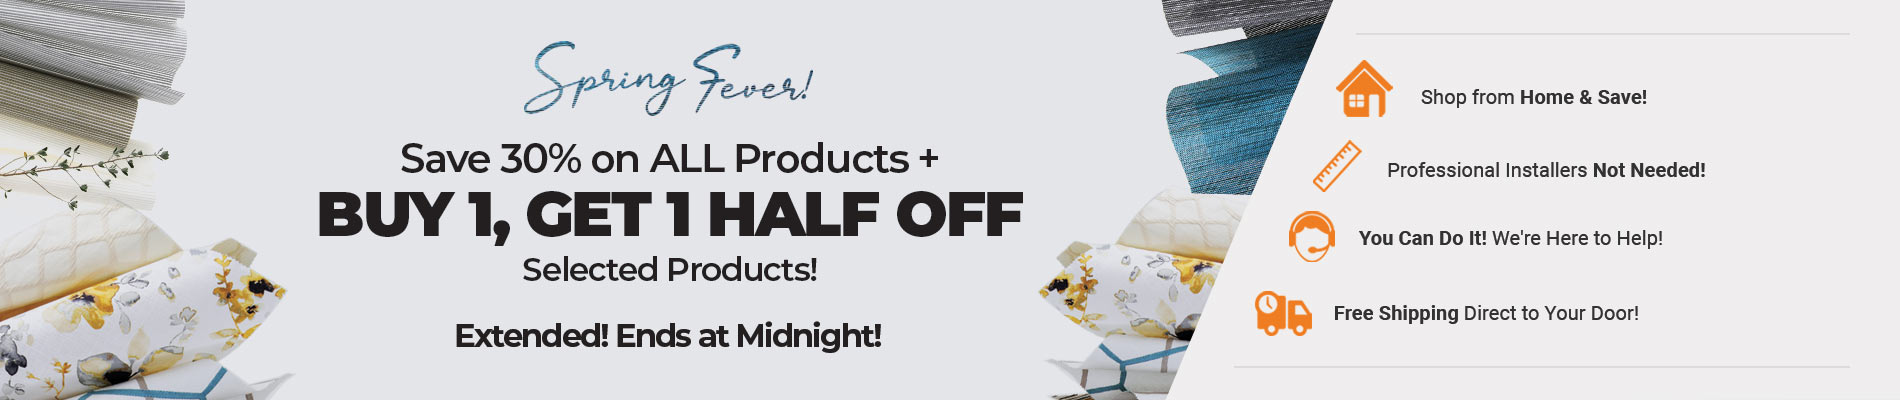 Save 30% on Everything + BOGO Half Off Selected Products